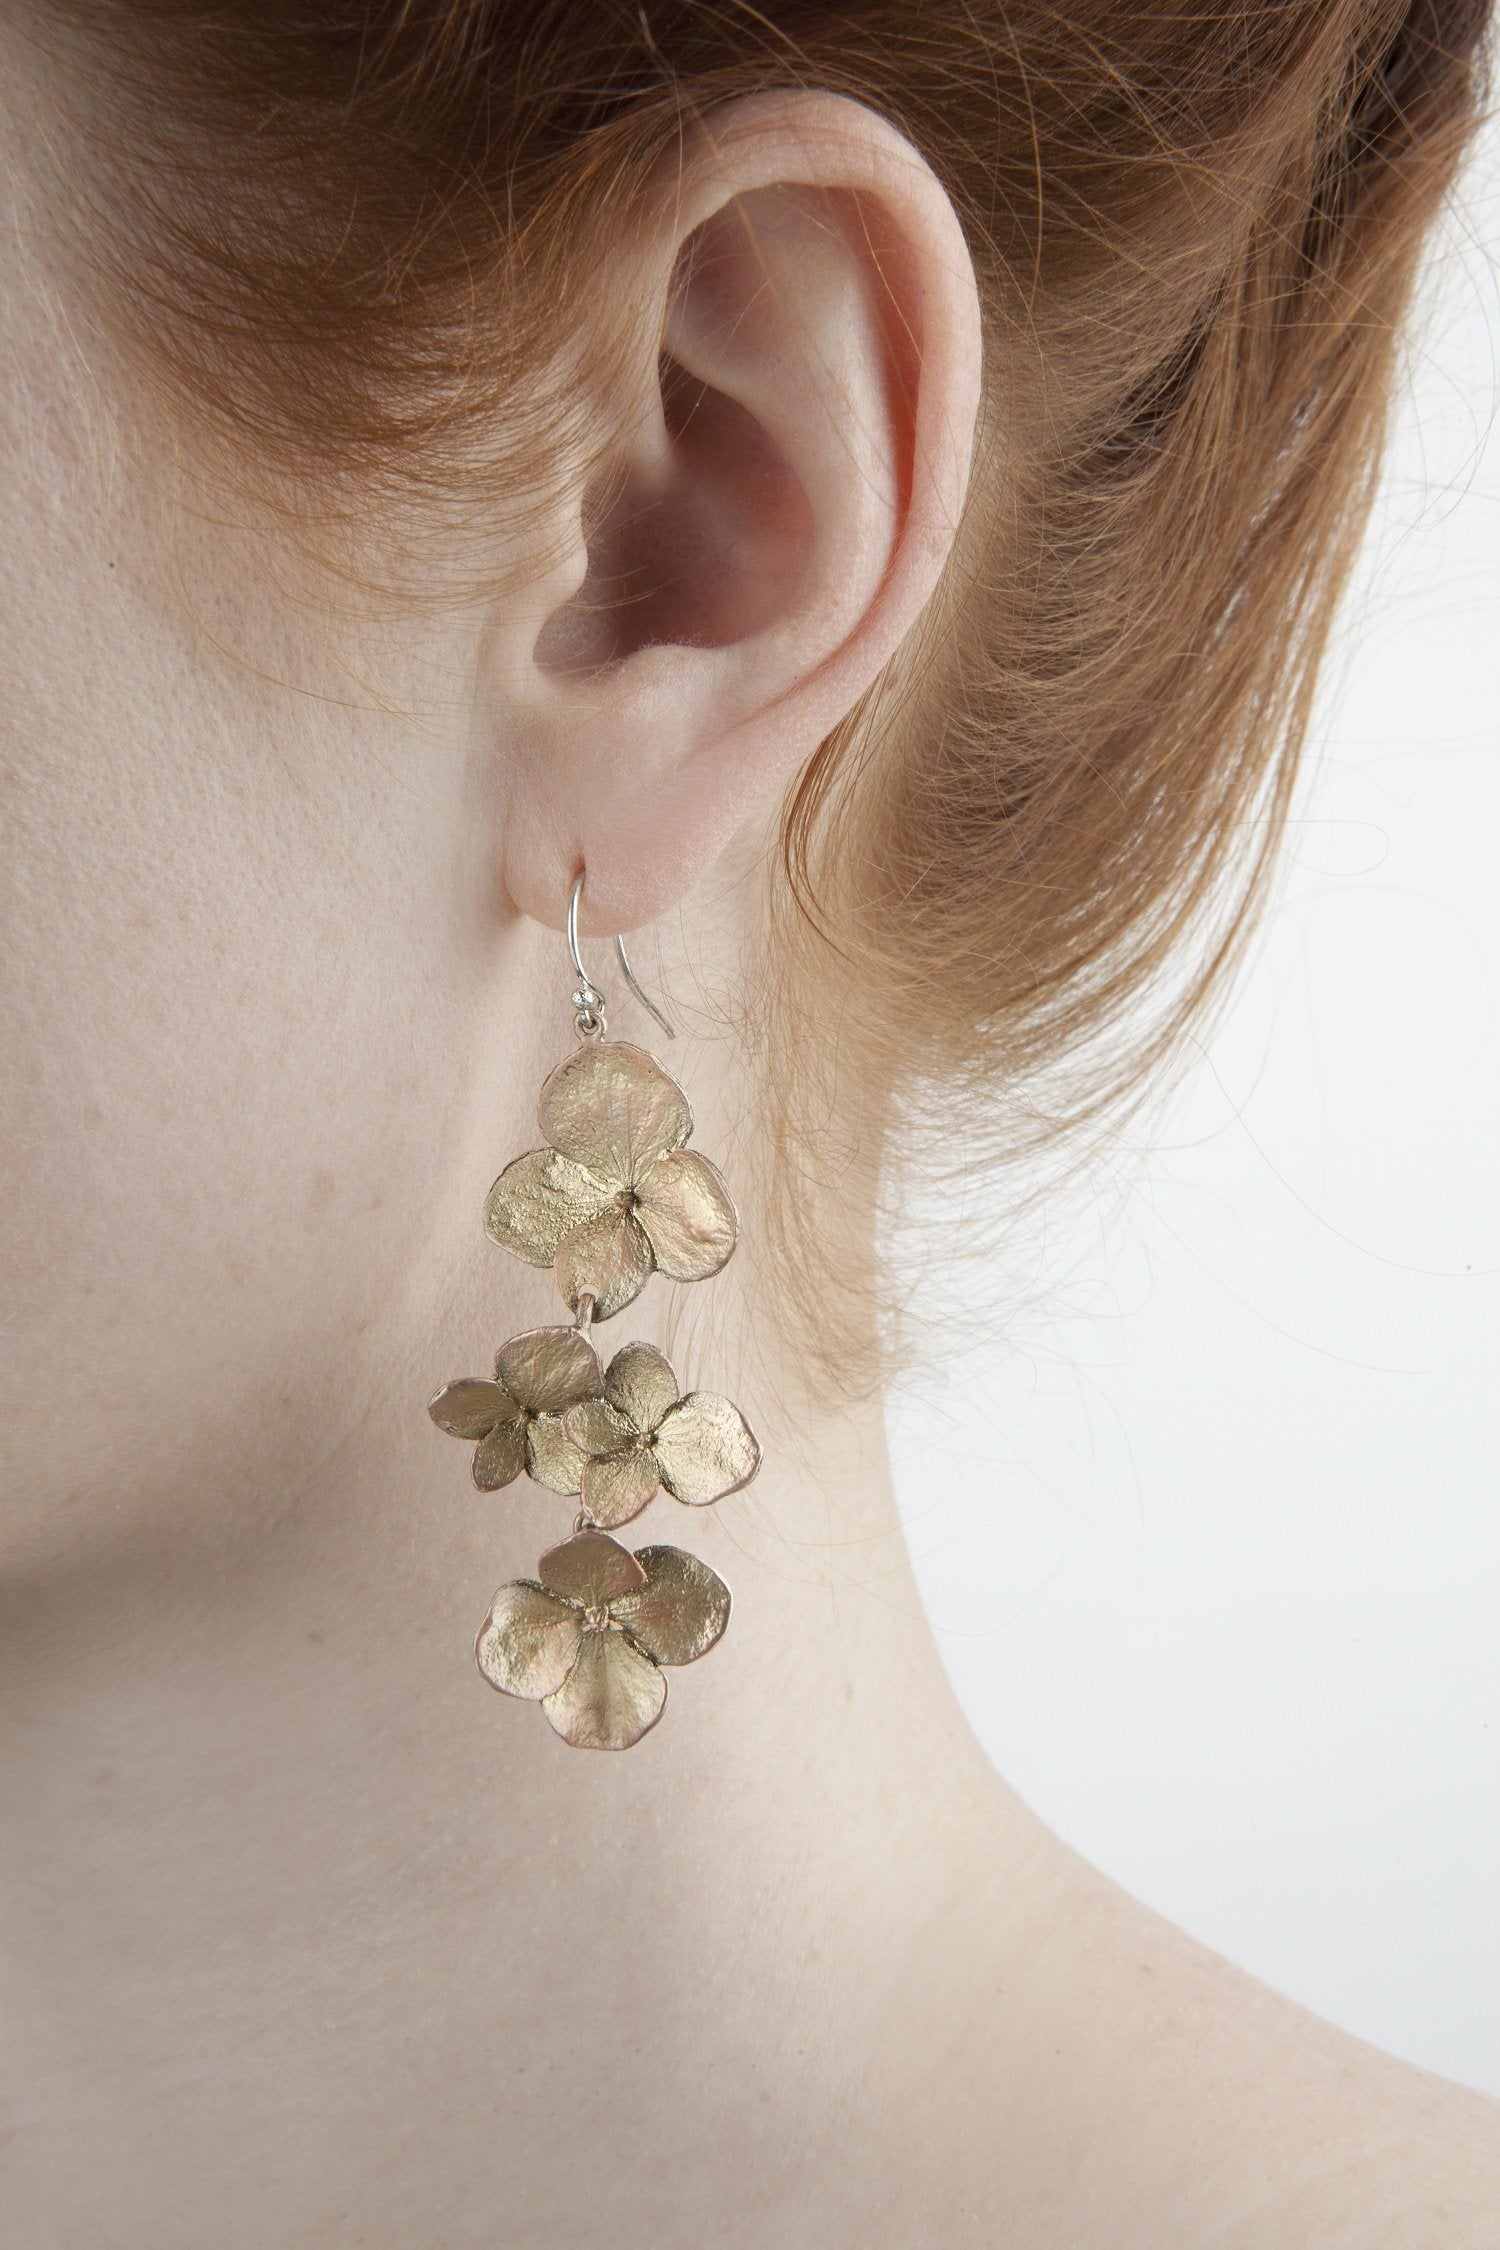 Hydrangea Earrings - Shower